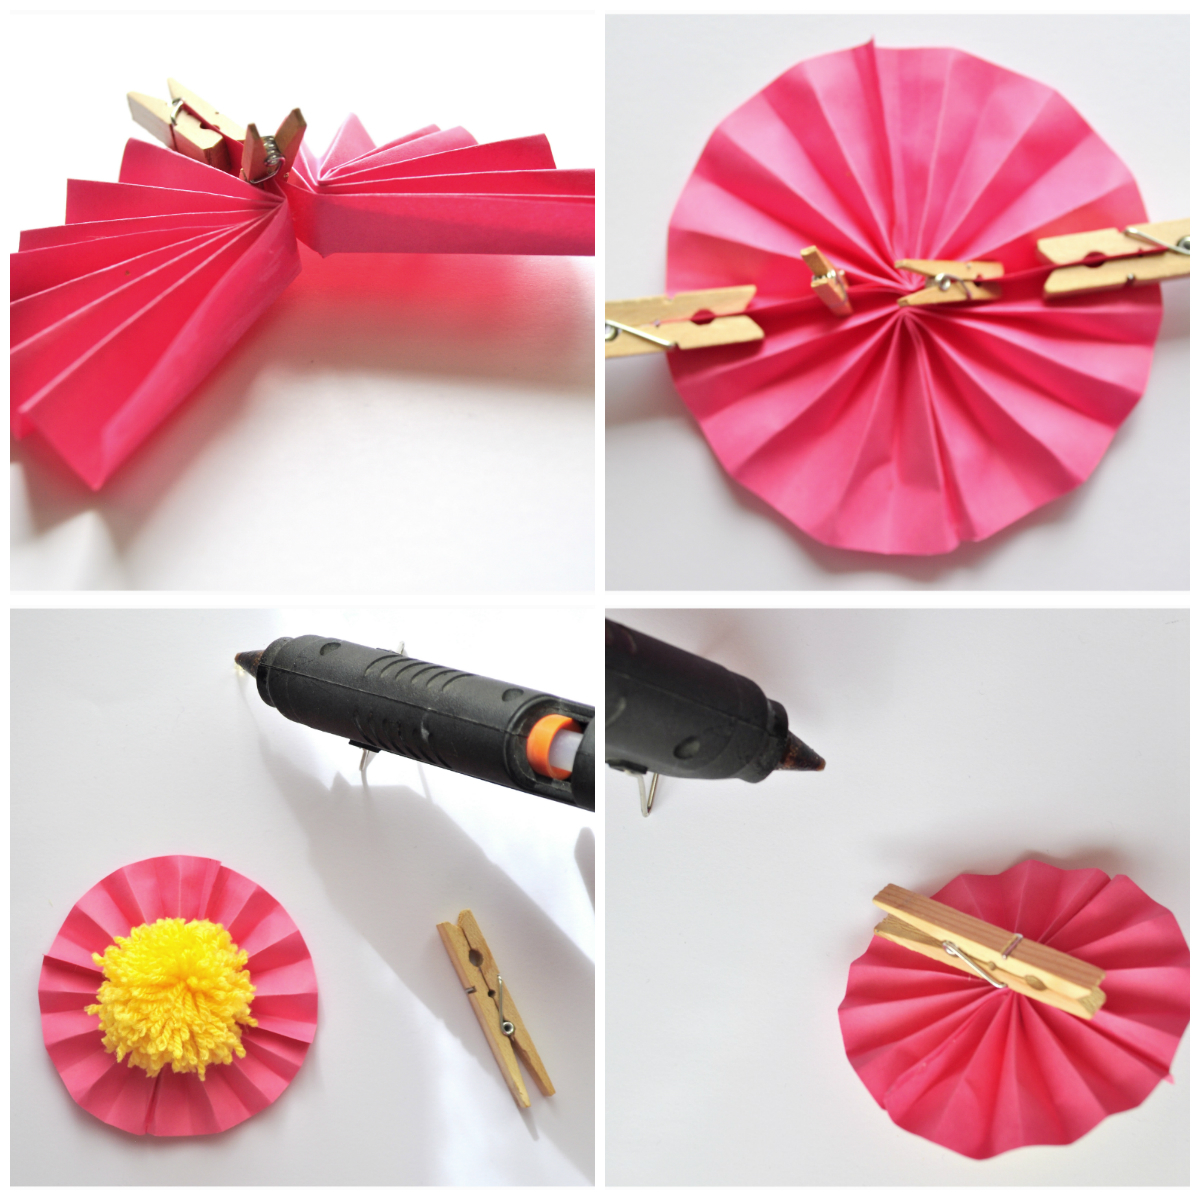 Handmade Paper Craft Gifts You can Make Right Now Easy Breezy Ultra Fun Diy Project Mini Paper Fans